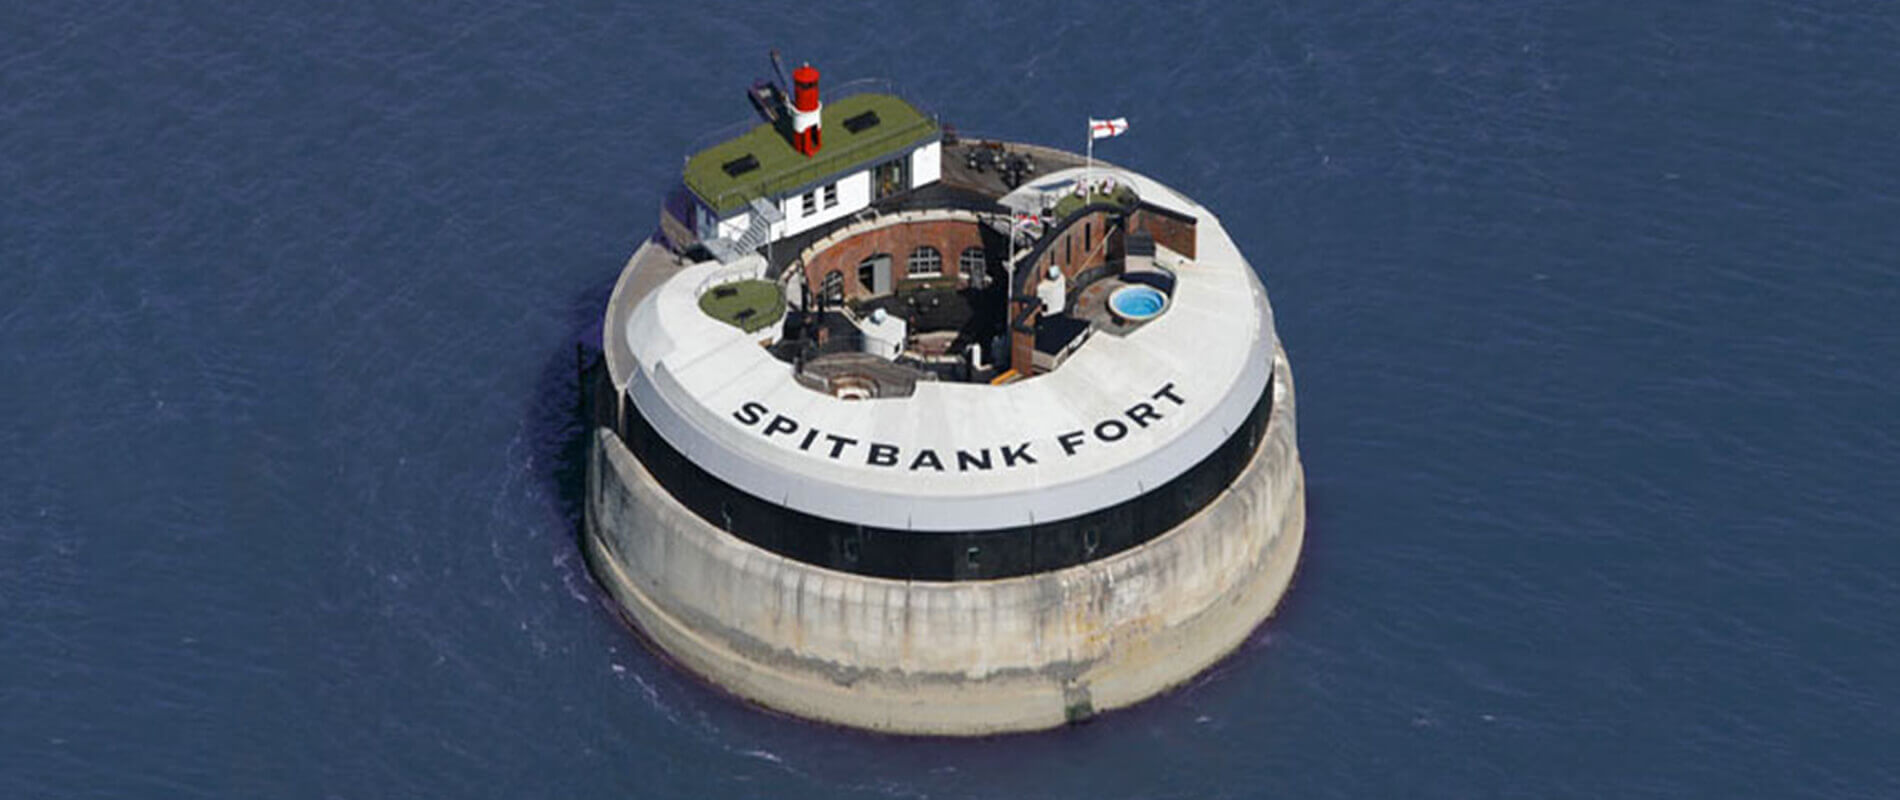 Spitbank Fort, A Military Fort Transformed into a Luxury Hotel